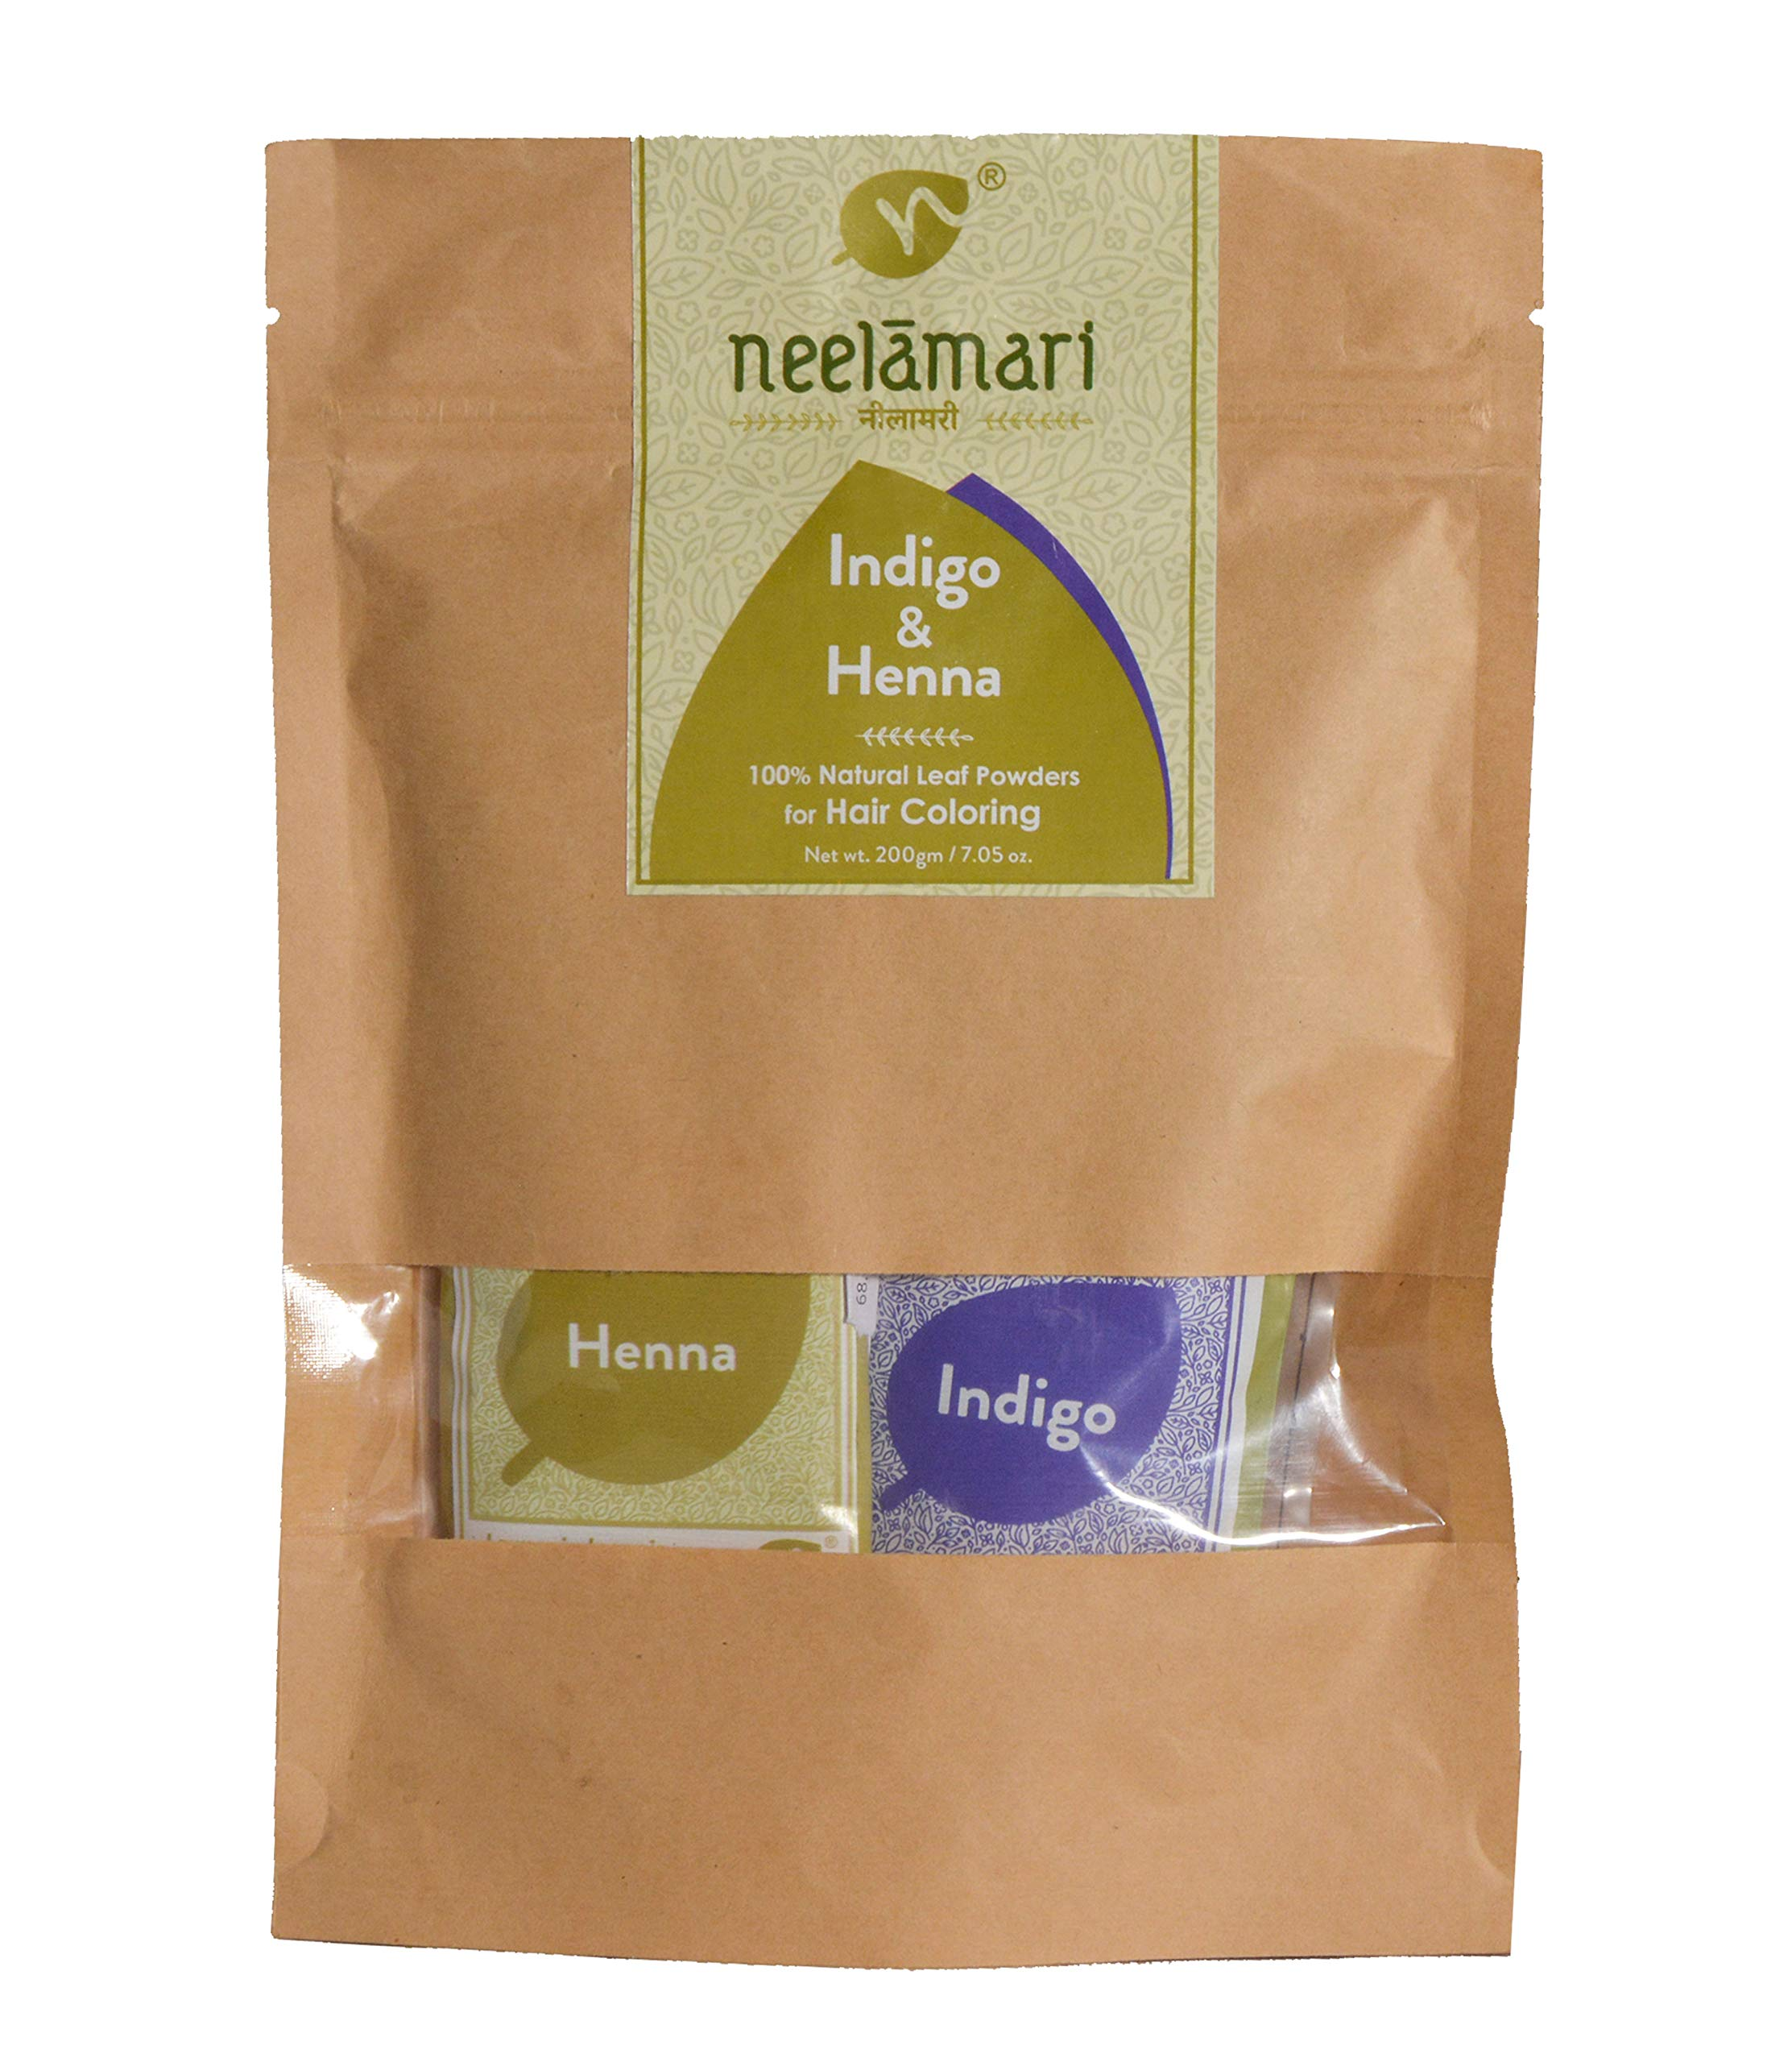 Neelamari Natural Indigo With Henna Powder (100 g + 100 g) product image